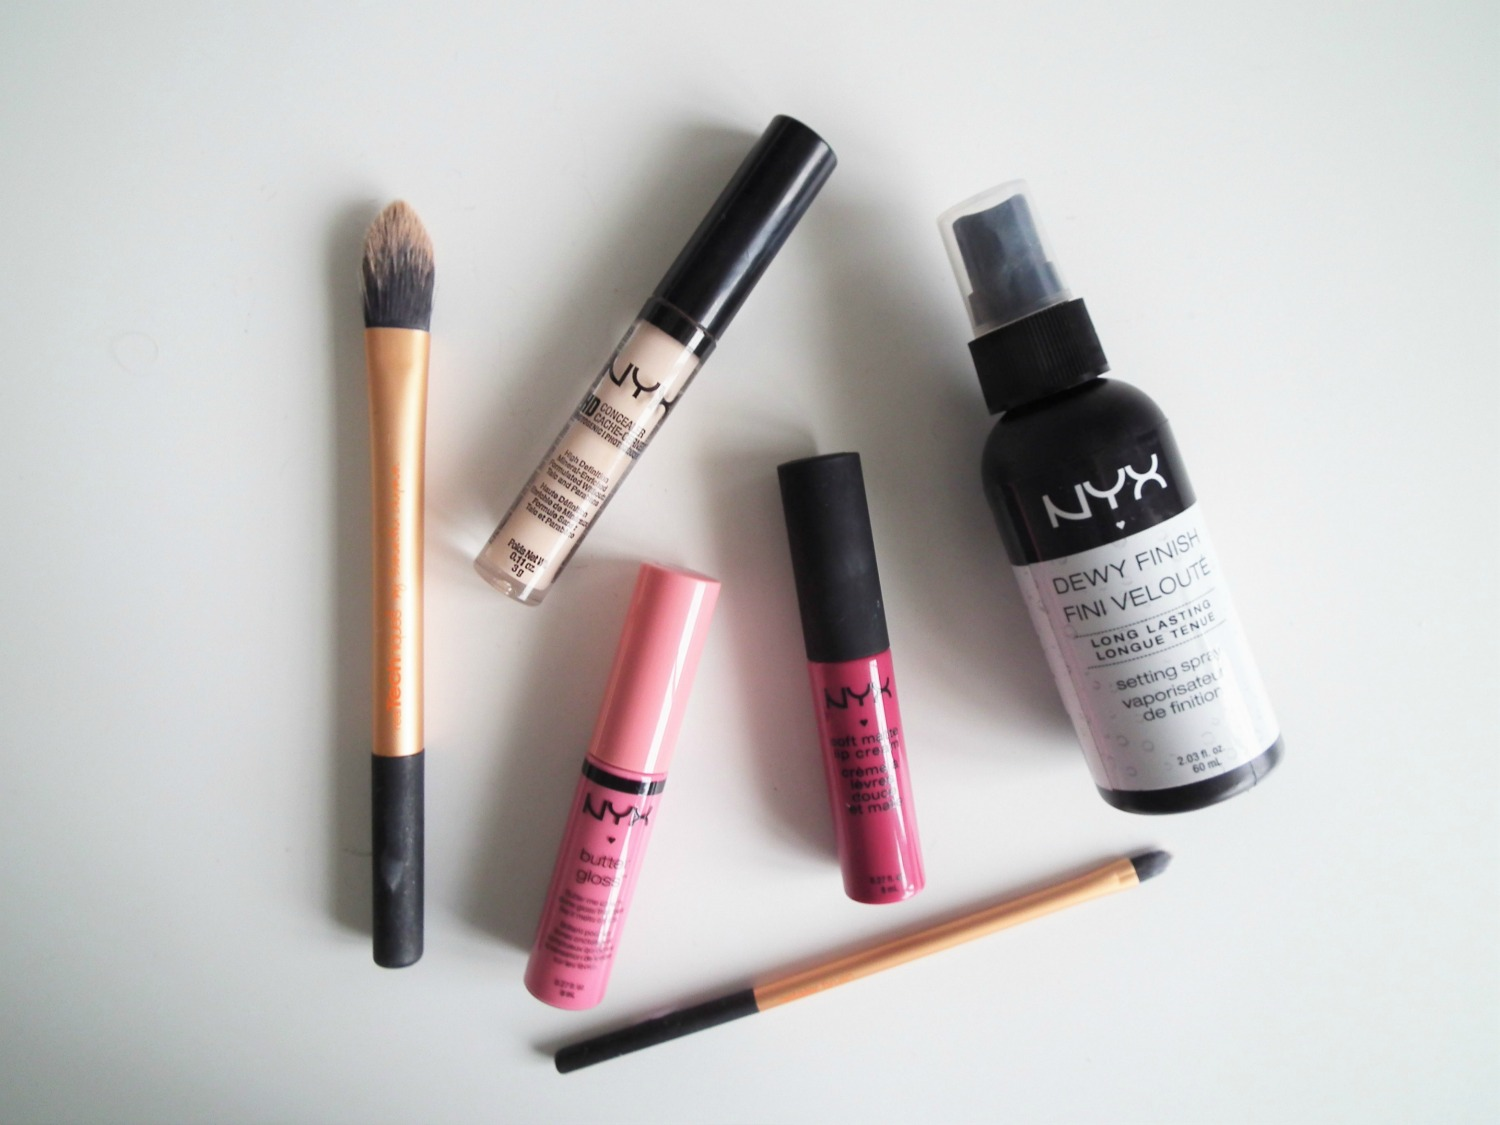 NYX Haul and First Impressions